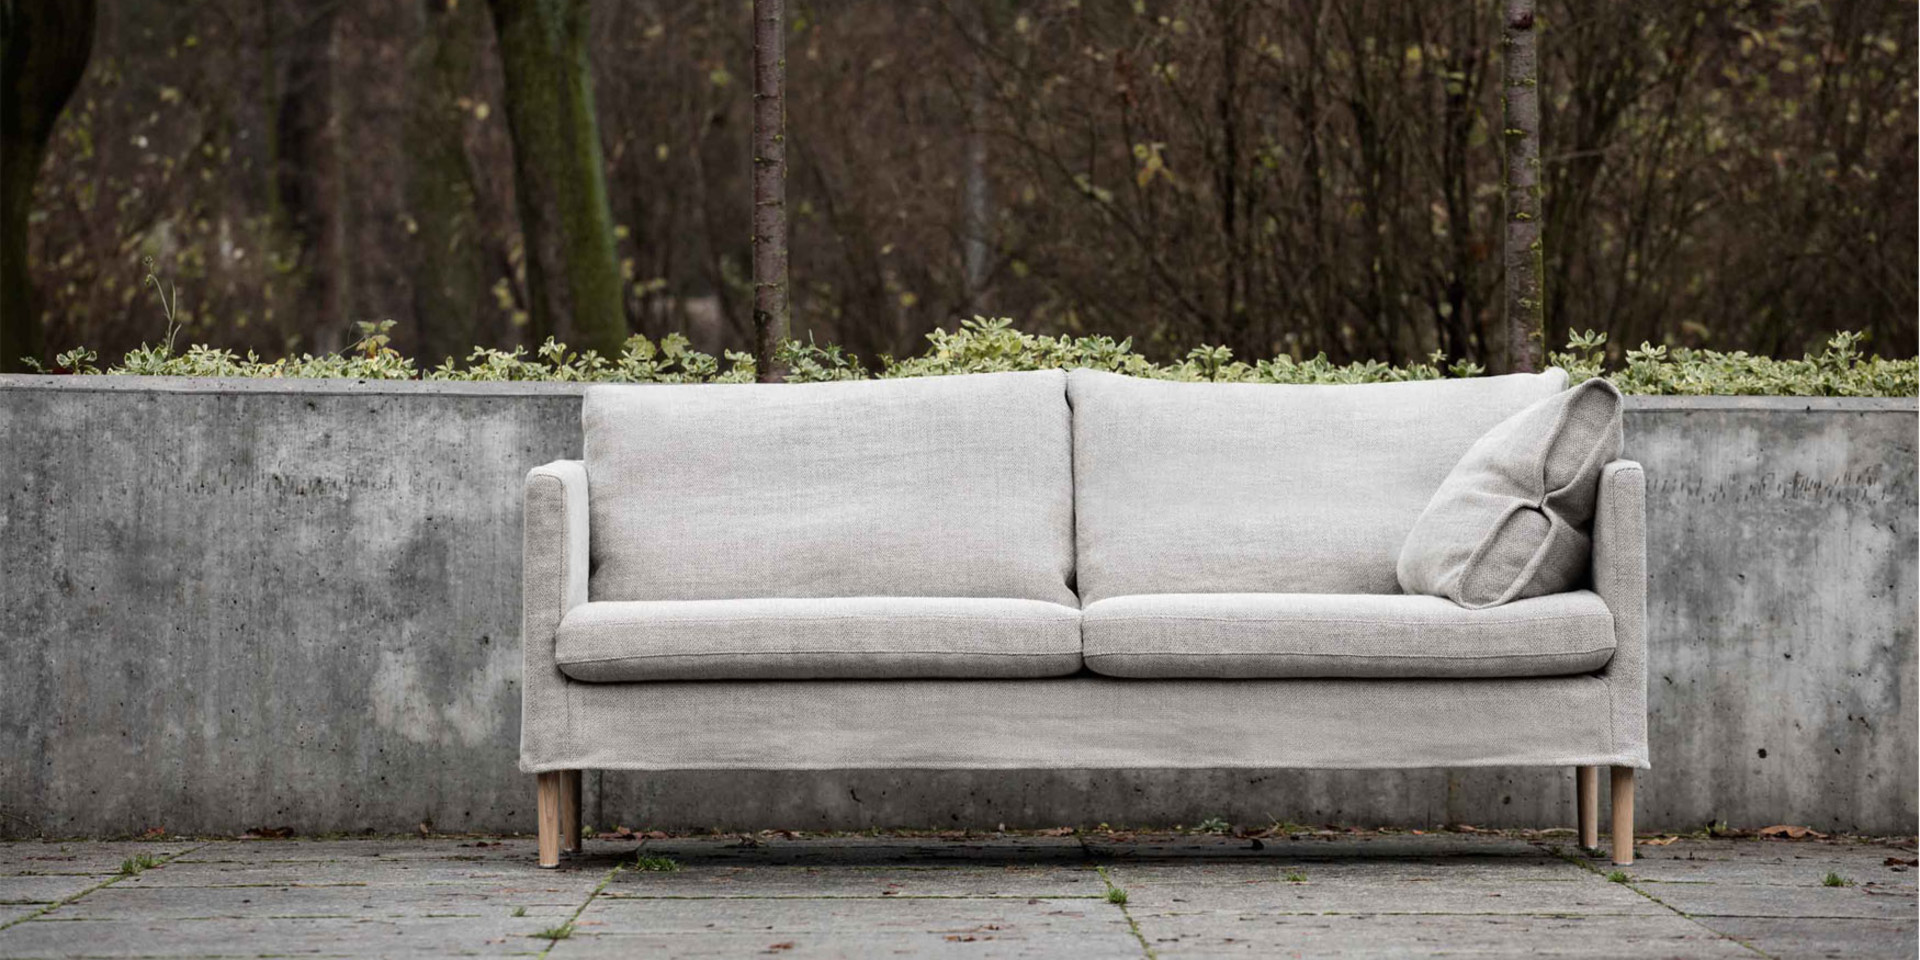 sits-lena-ambiance-arrangement_ver.A_2seater_linenQ425_laundered8_earth_3